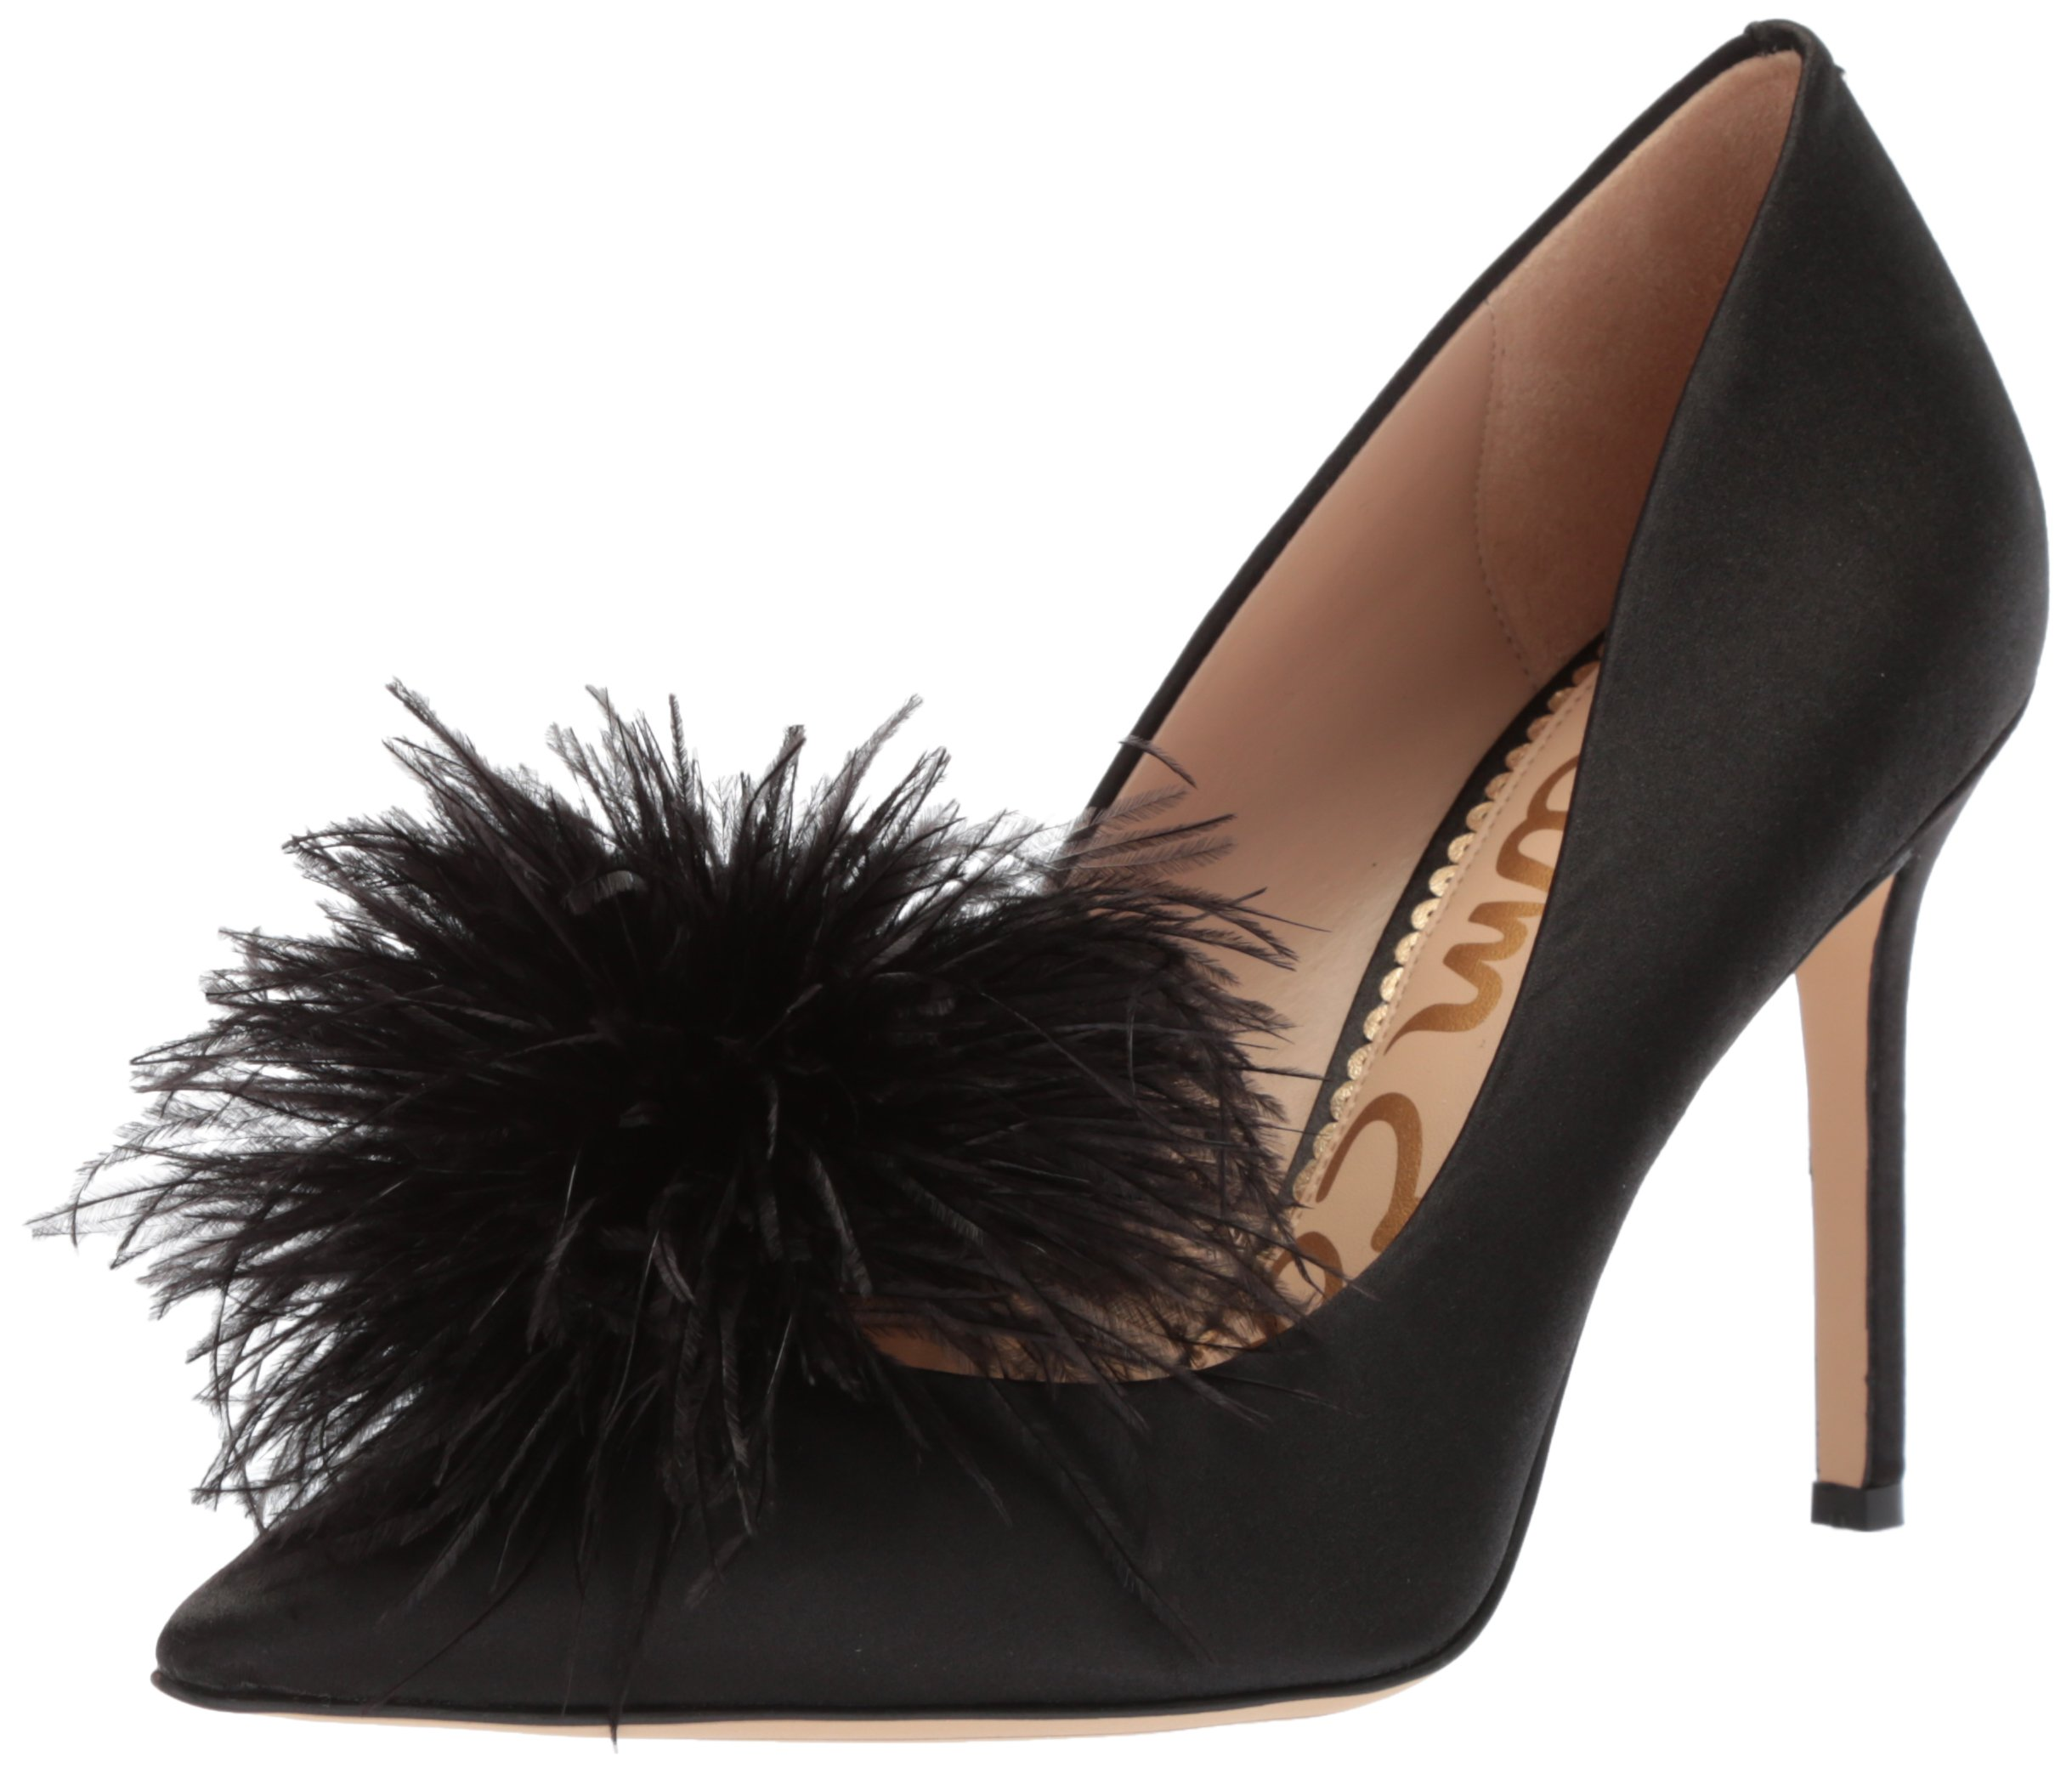 Sam Edelman Women's Haide Pump, Black Satin, 6.5 Medium US